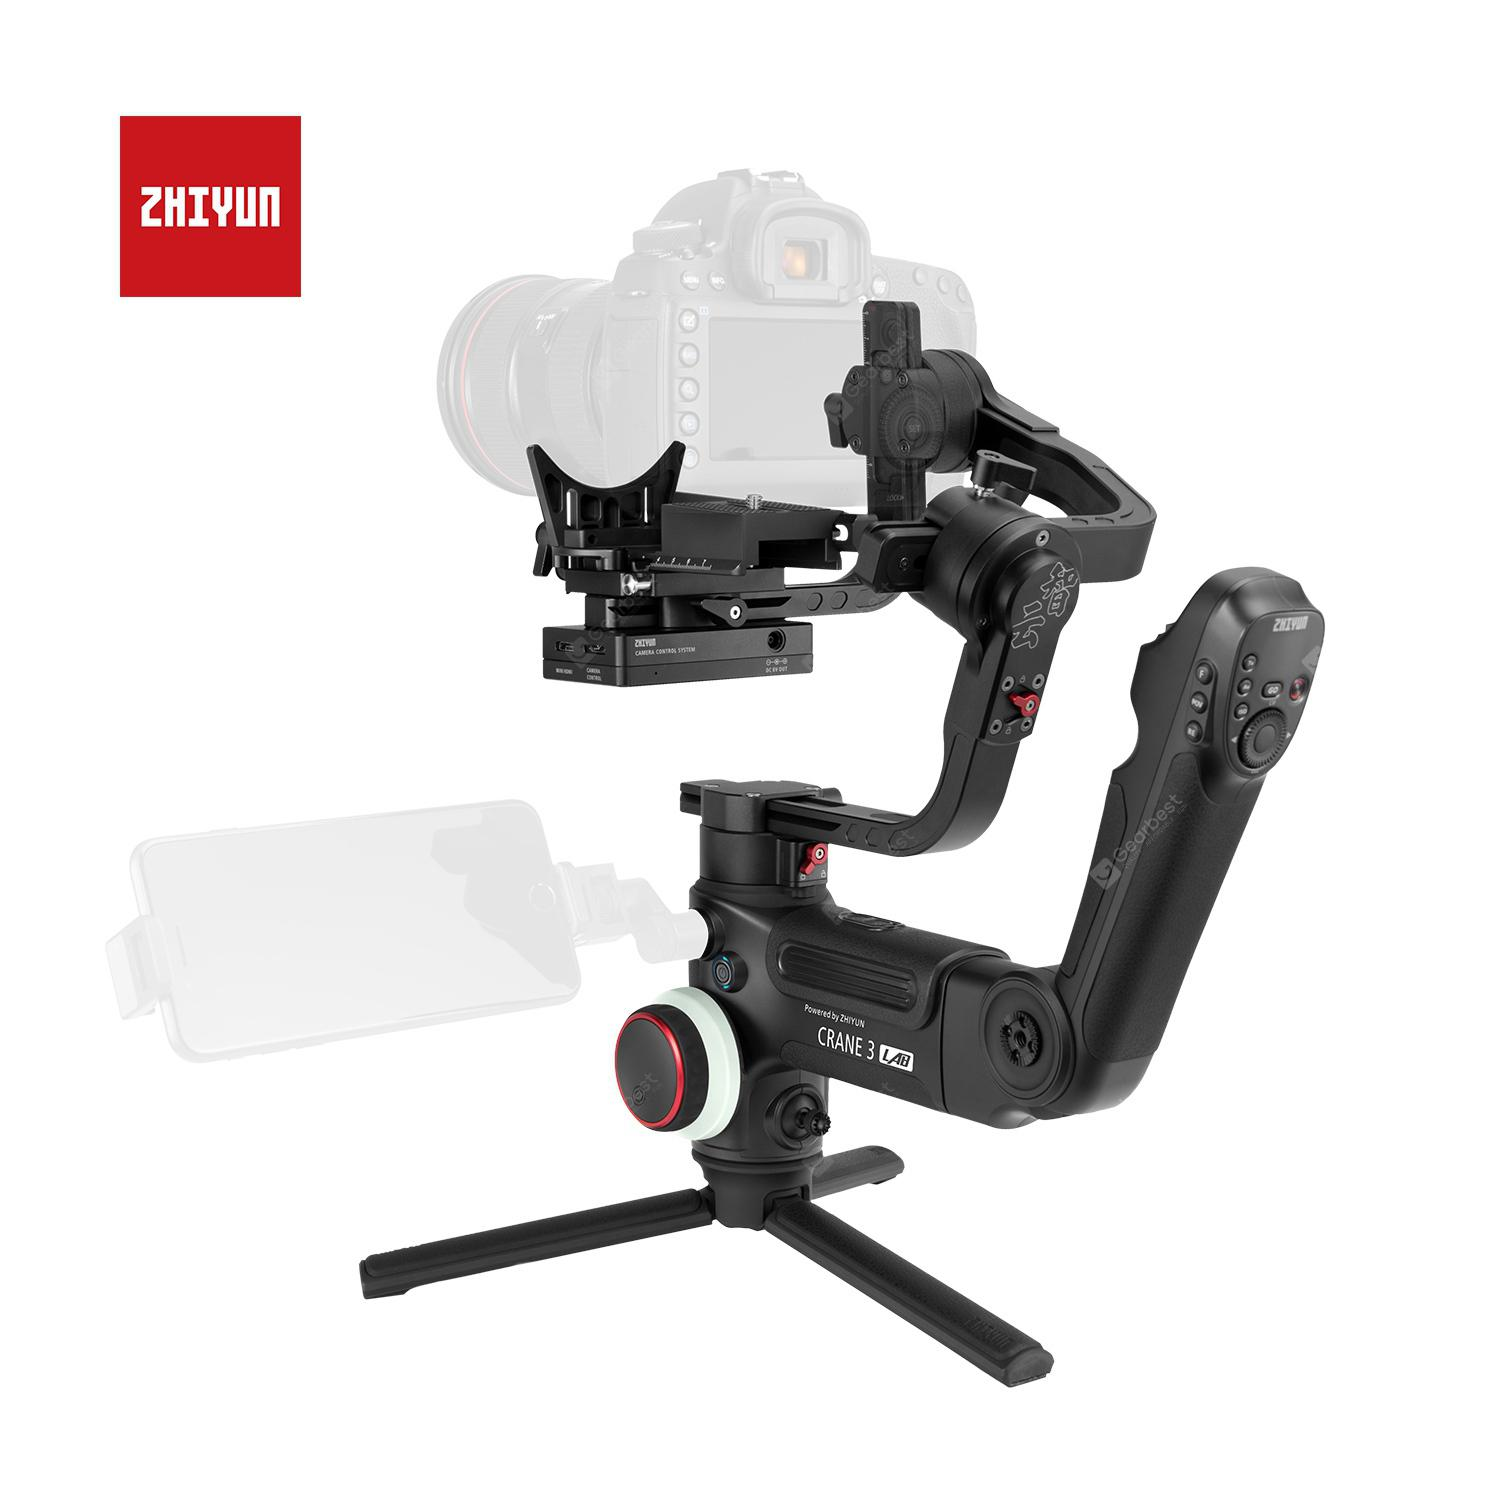 ZHIYUN Crane 3 LAB Handheld Gimbal Wireless Image Transmission Camera Stabilizer for DSLR VS DJI